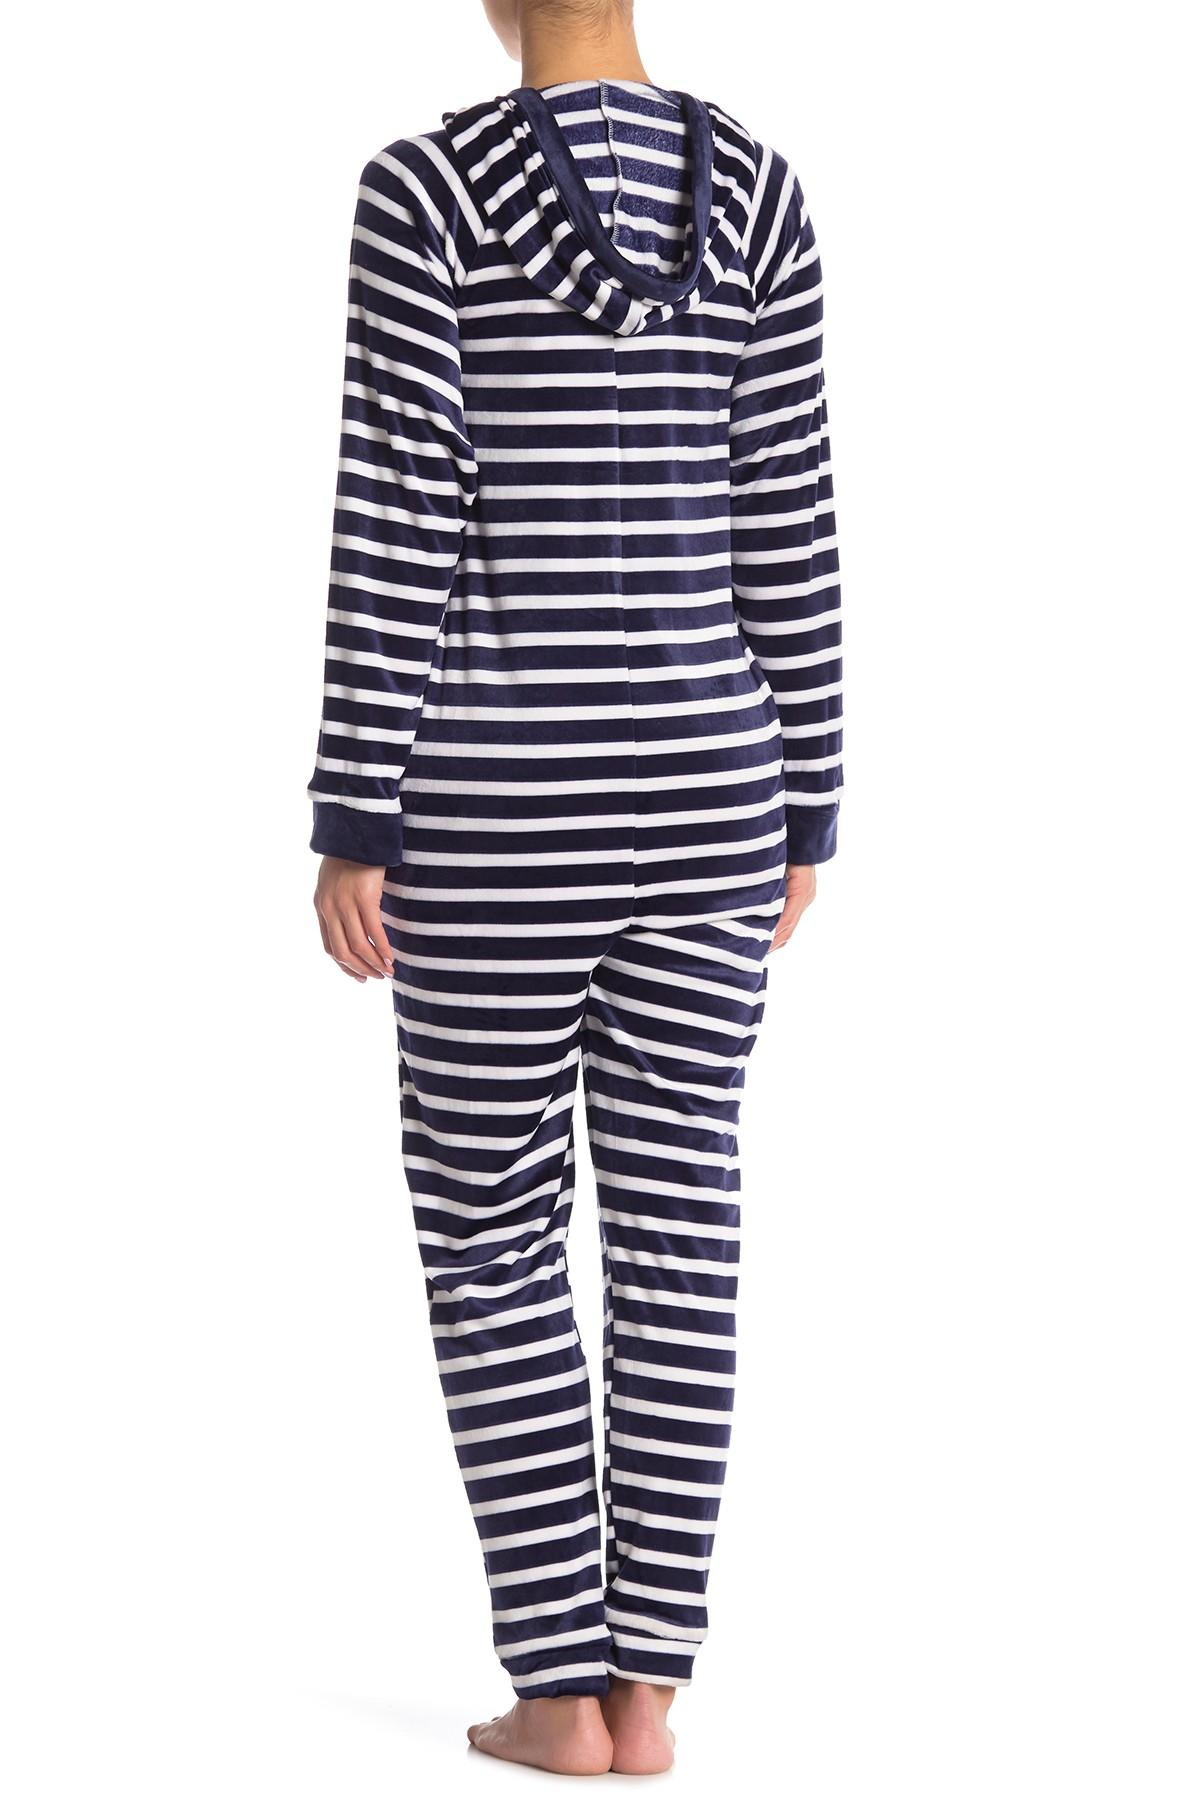 ece760ba3612 Lyst - Room Service Hooded Jumpsuit (nordstrom Exclusive) in Blue ...